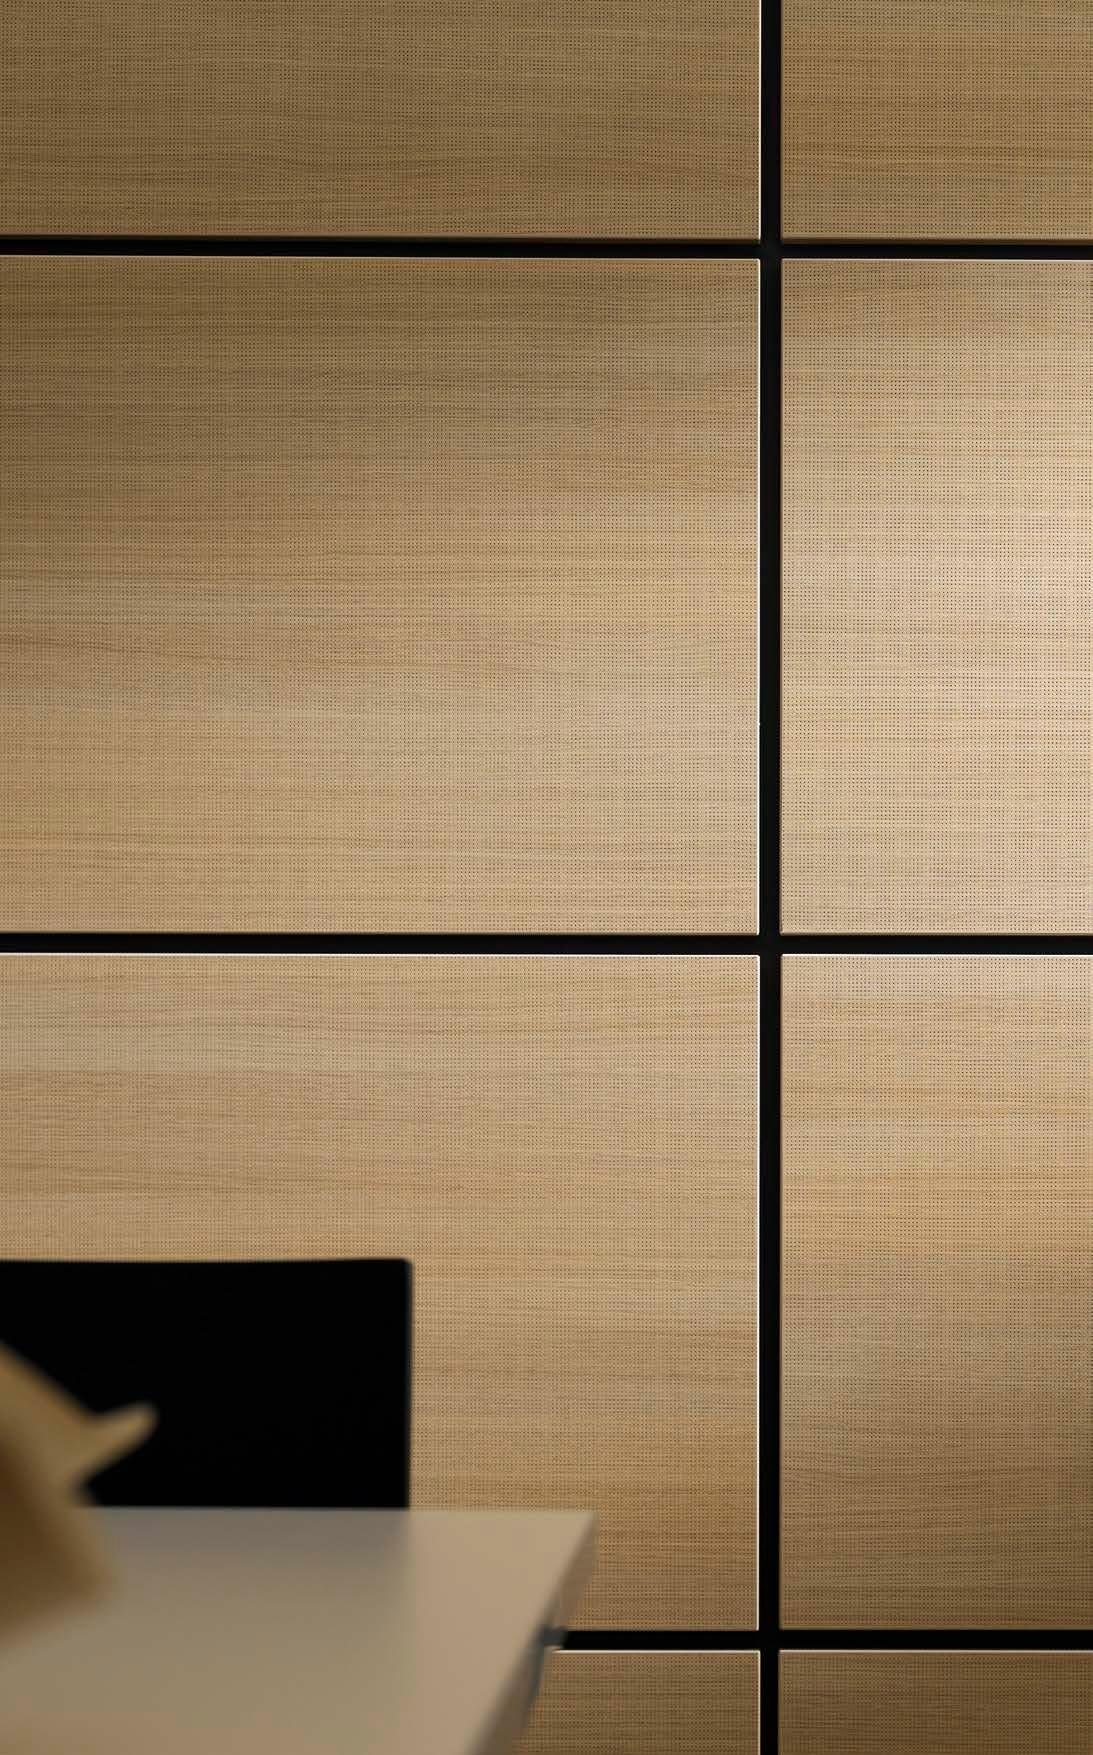 Decorative acoustical panels egger proakustik by legnopan - Decorative acoustic wall panels ...